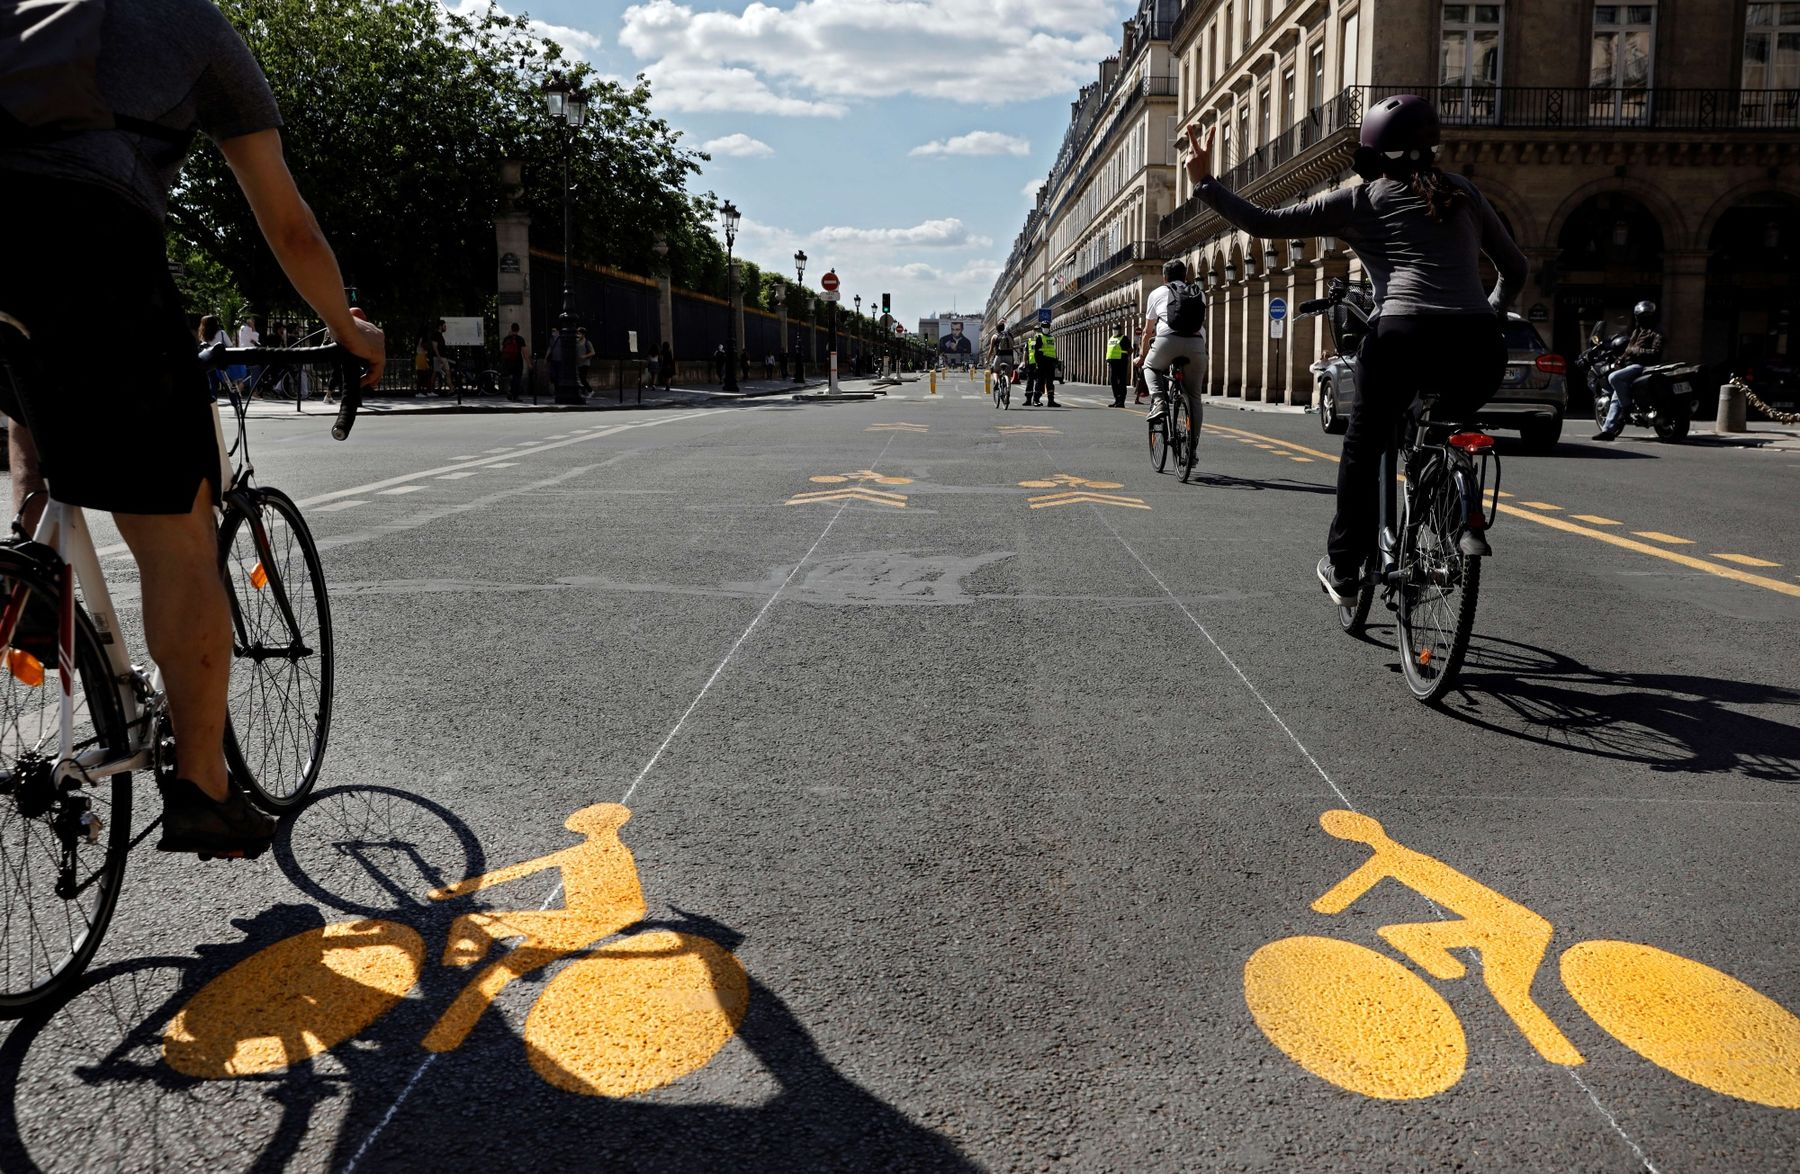 A new dedicated bike lane on the Rue de Rivoli in Paris, where Mayor Anne Hidalgo has heavily promoted bike- and pedestrian-friendly infrastructure.